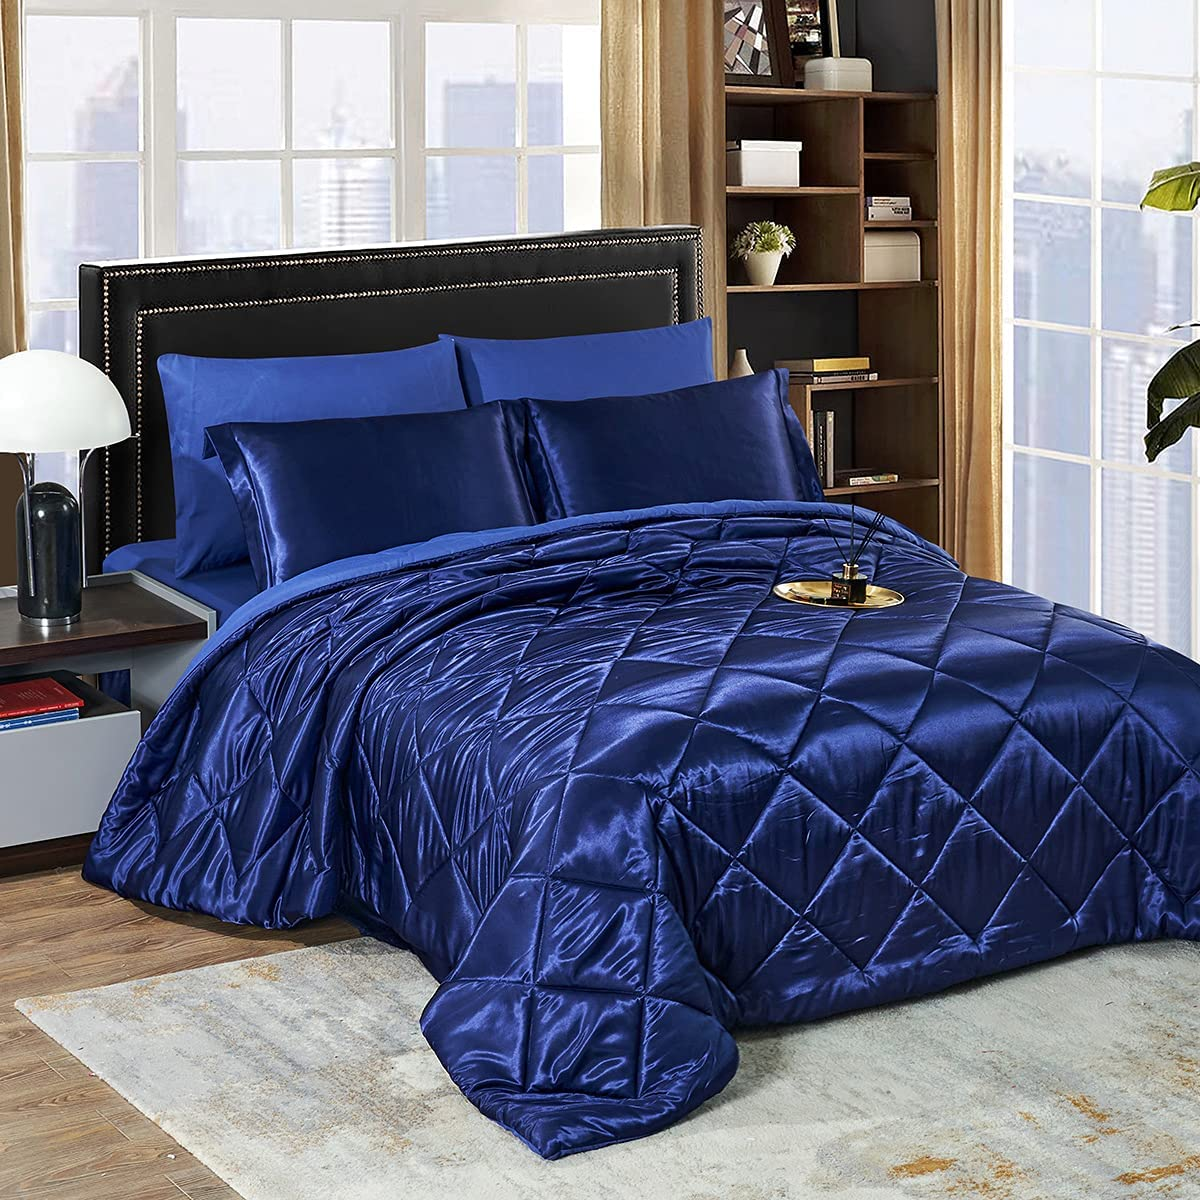 HAOK Luxury New color Max 52% OFF Solid Satin 8-Pieces Silky Set Comforter Bed